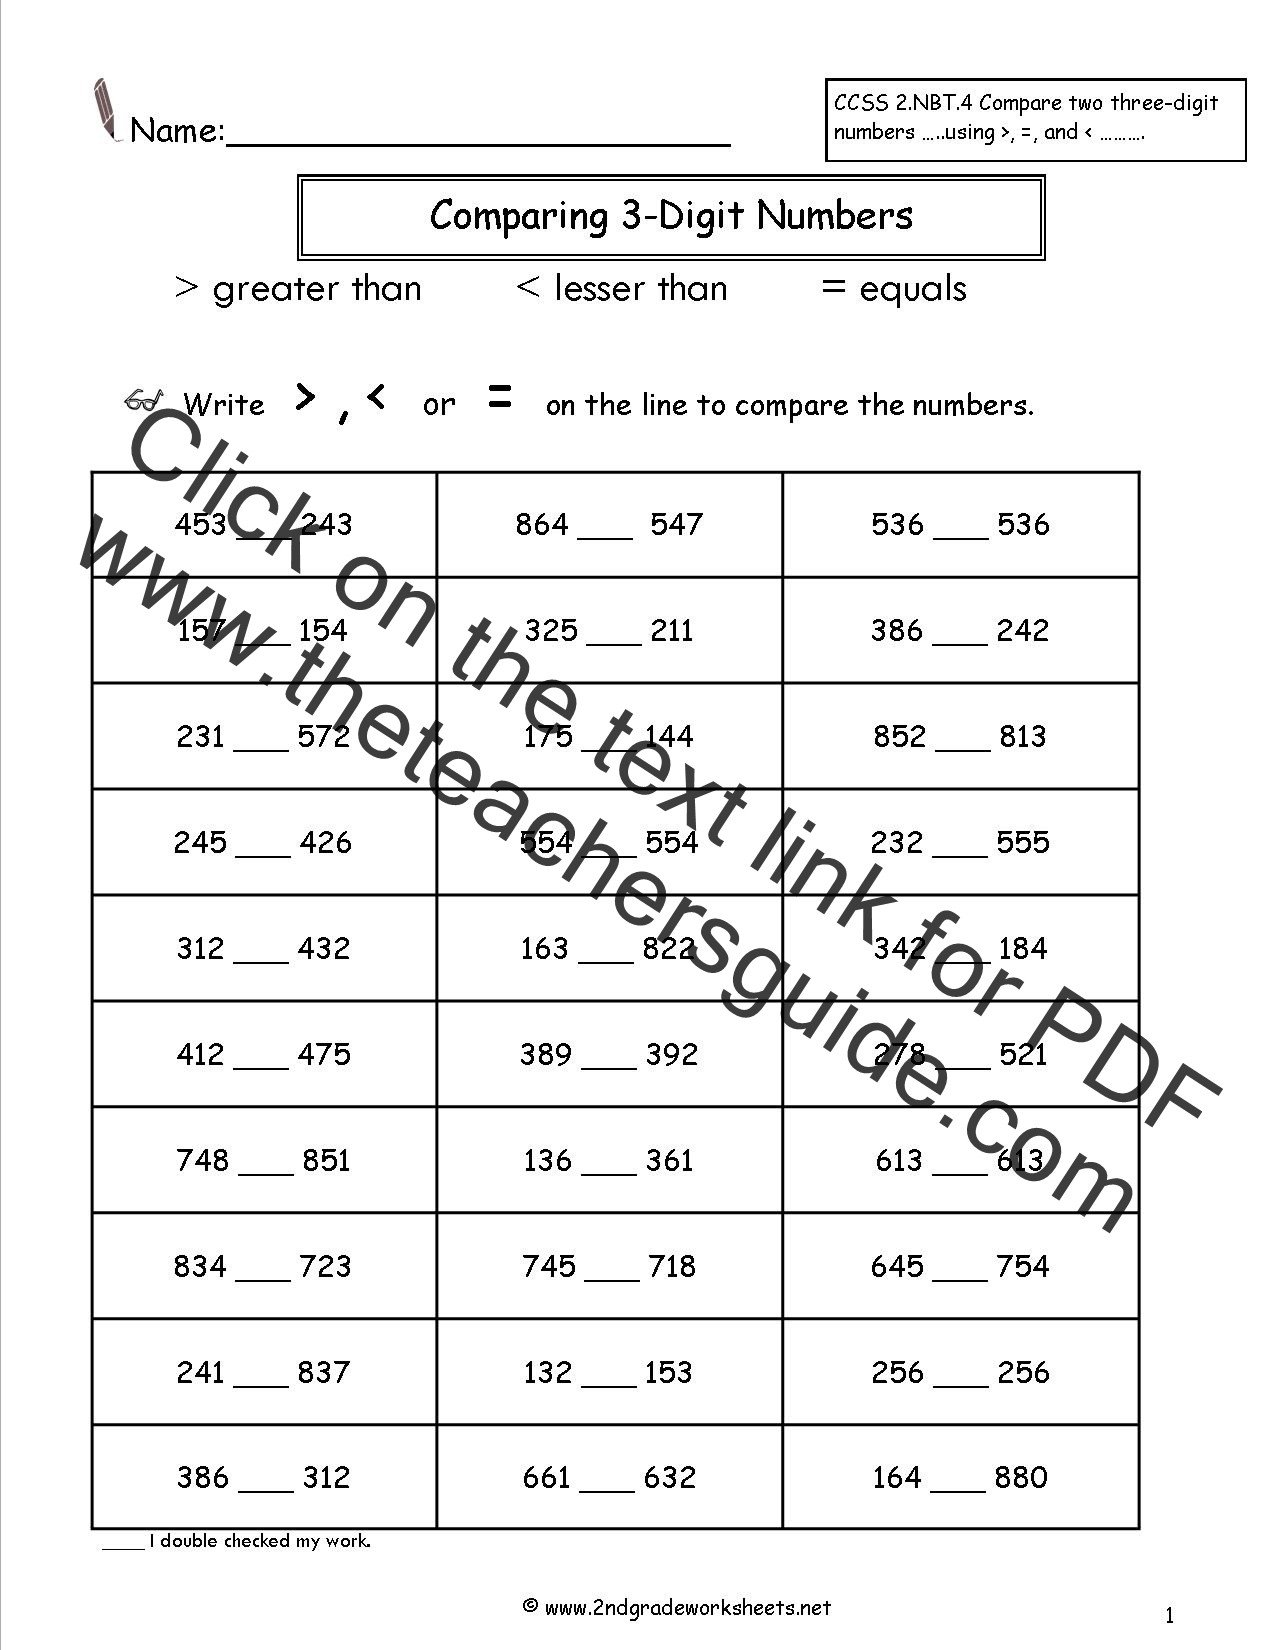 paring Two and Three Digit Numbers Worksheets